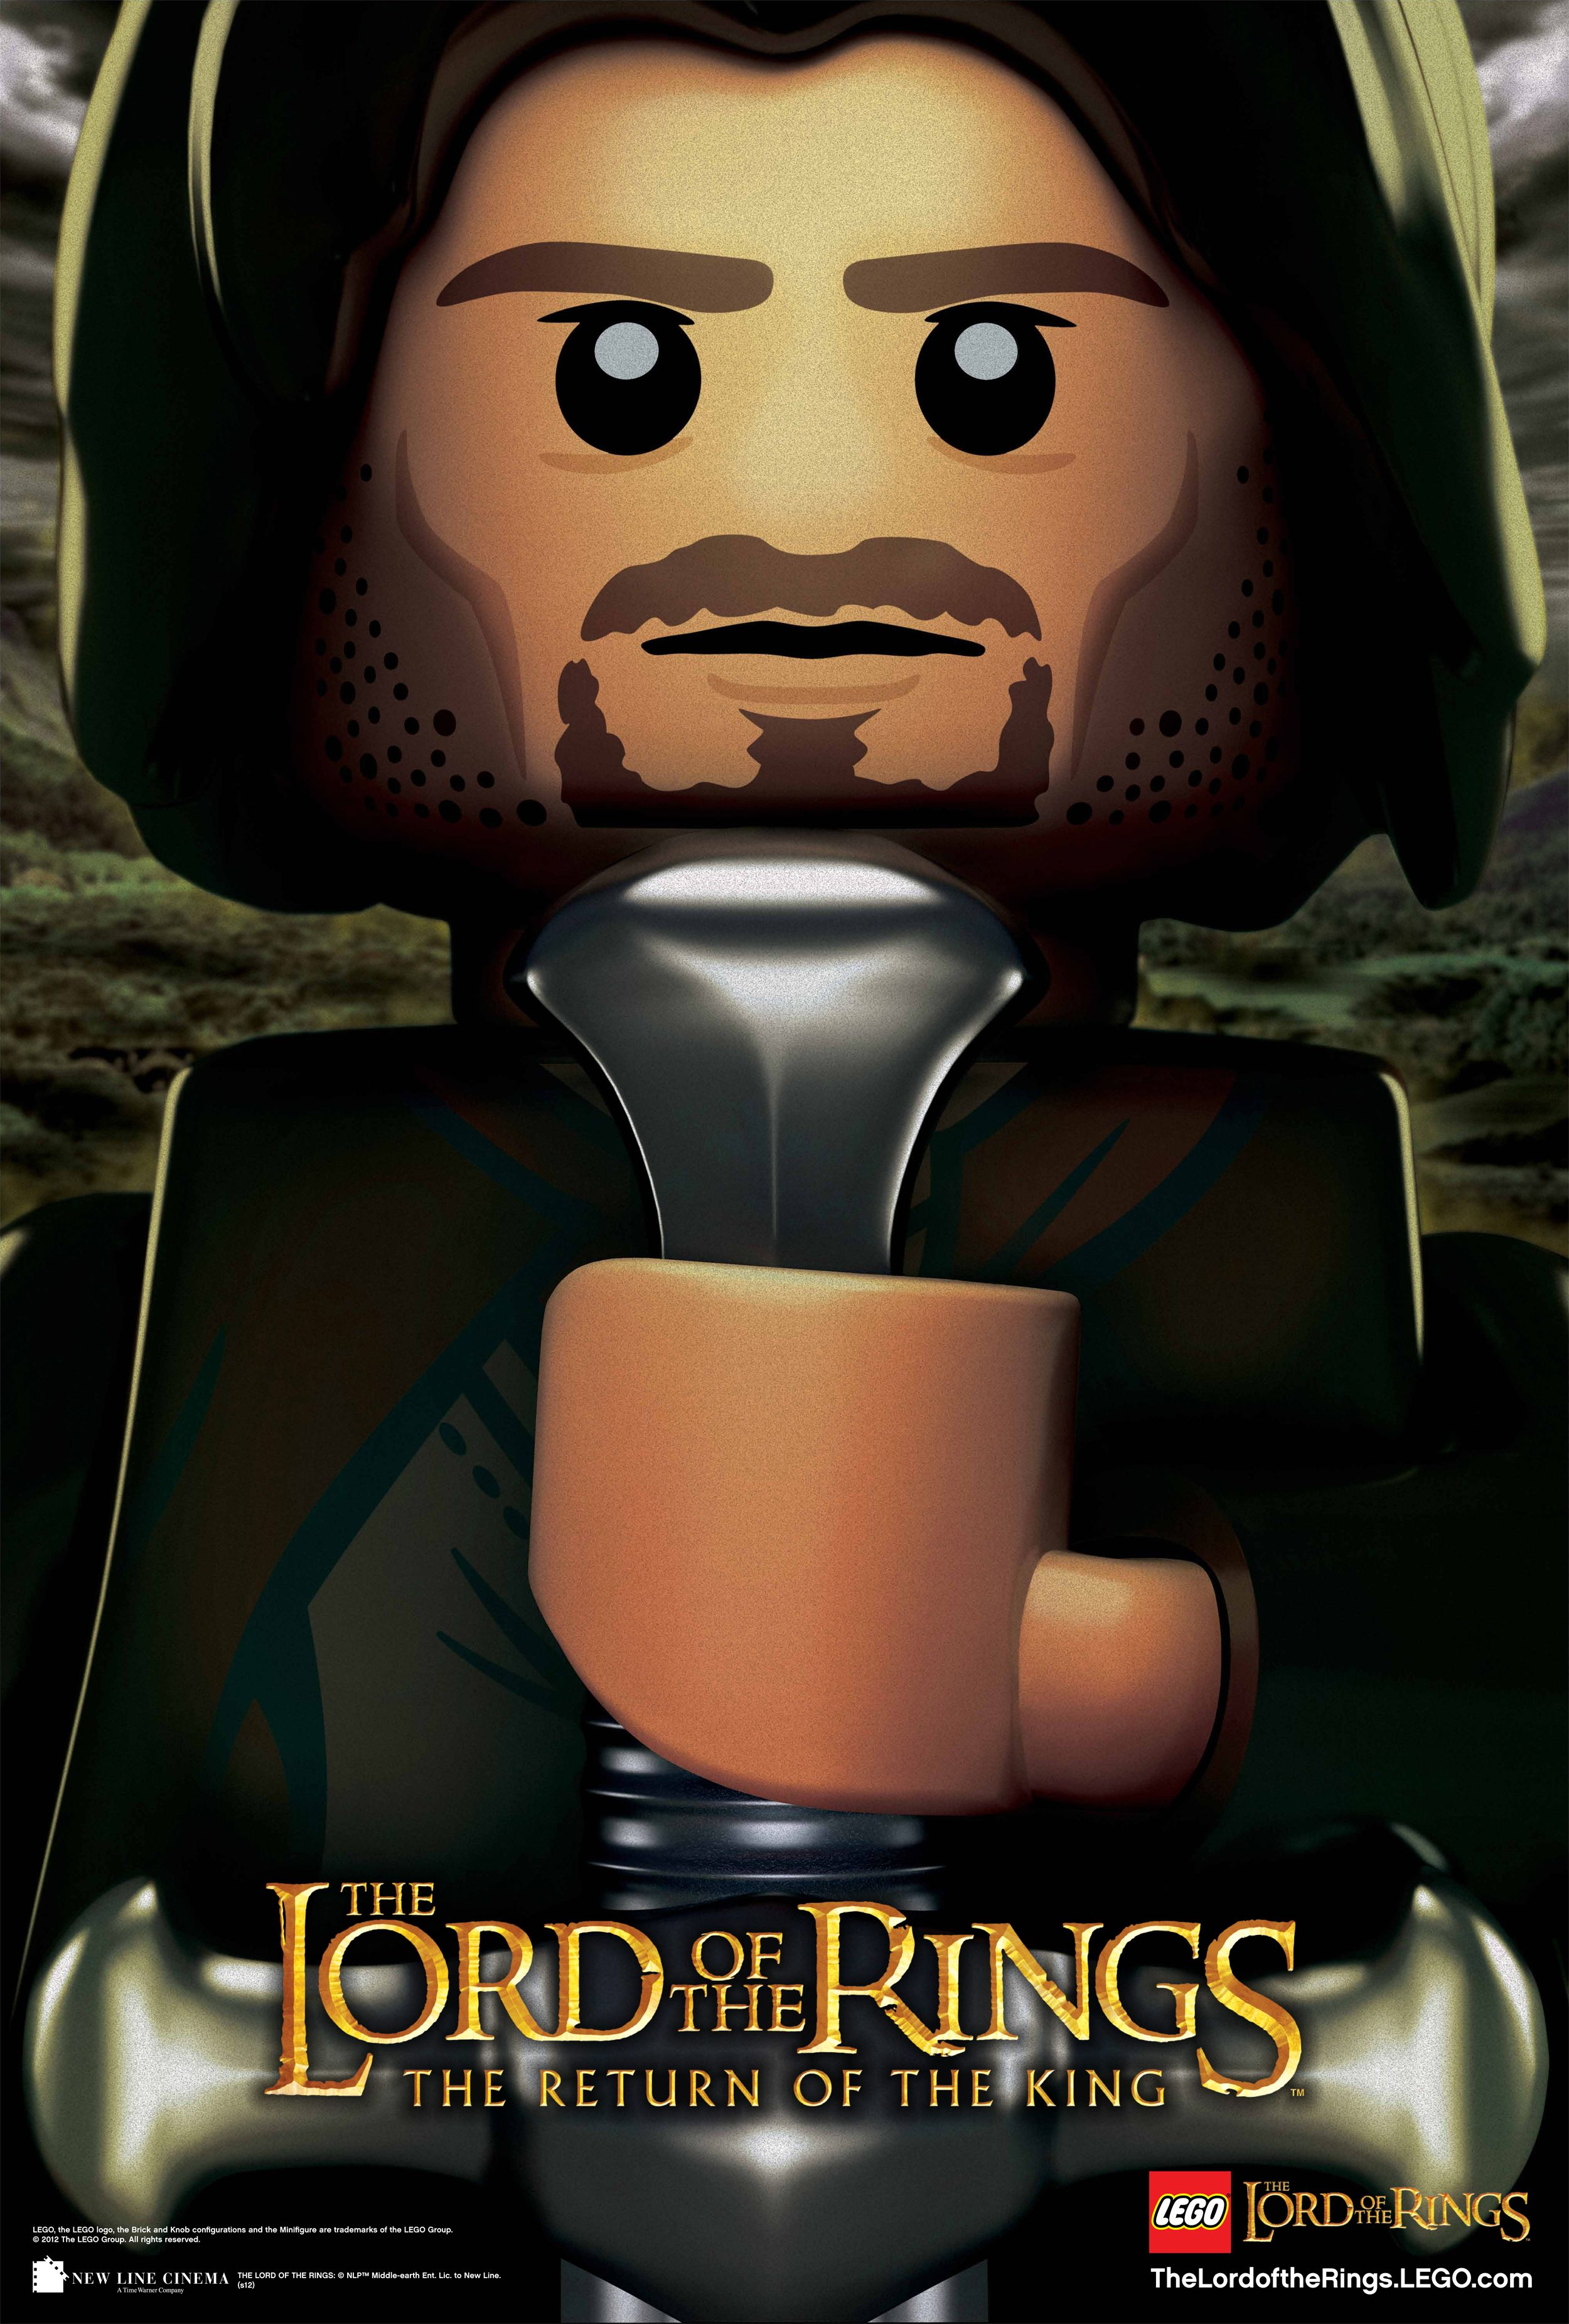 Lego Version Of The Return Of The King Poster Damn He Looks Good